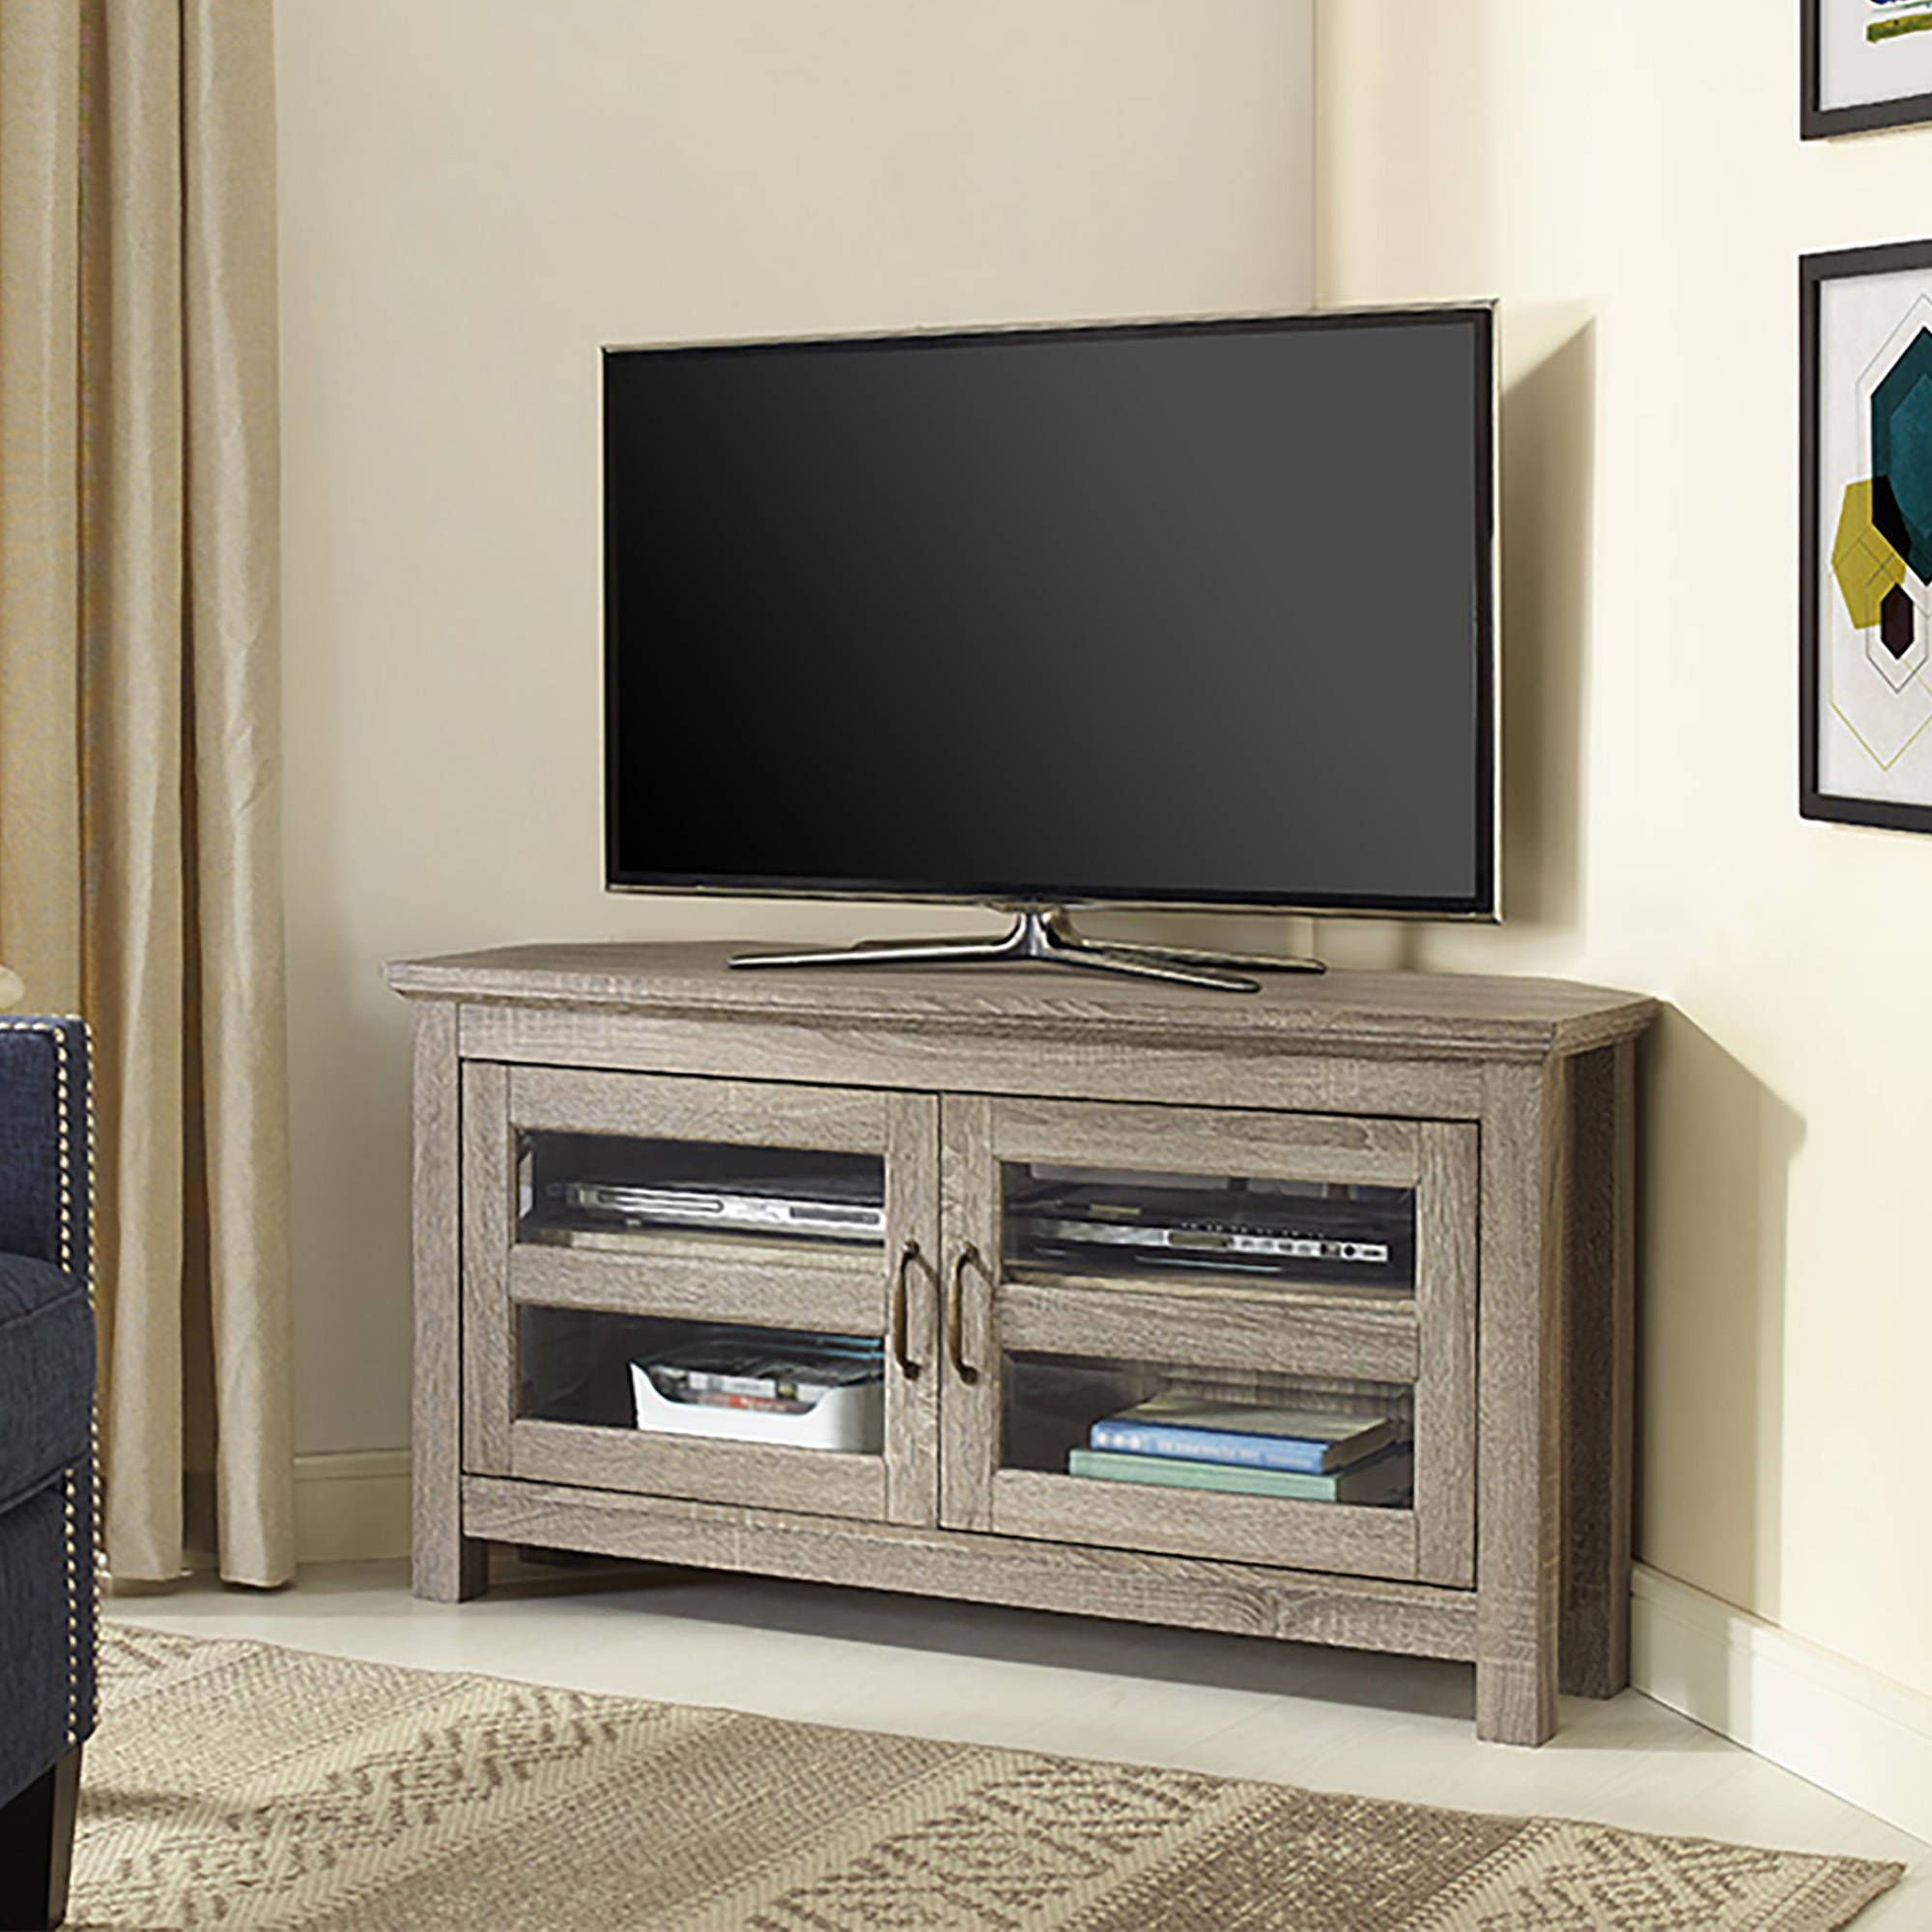 Clifton Corner Tv Unit Fits Up To 55 Inch Tv Corner Tv Unit Corner Tv Corner Tv Cabinets